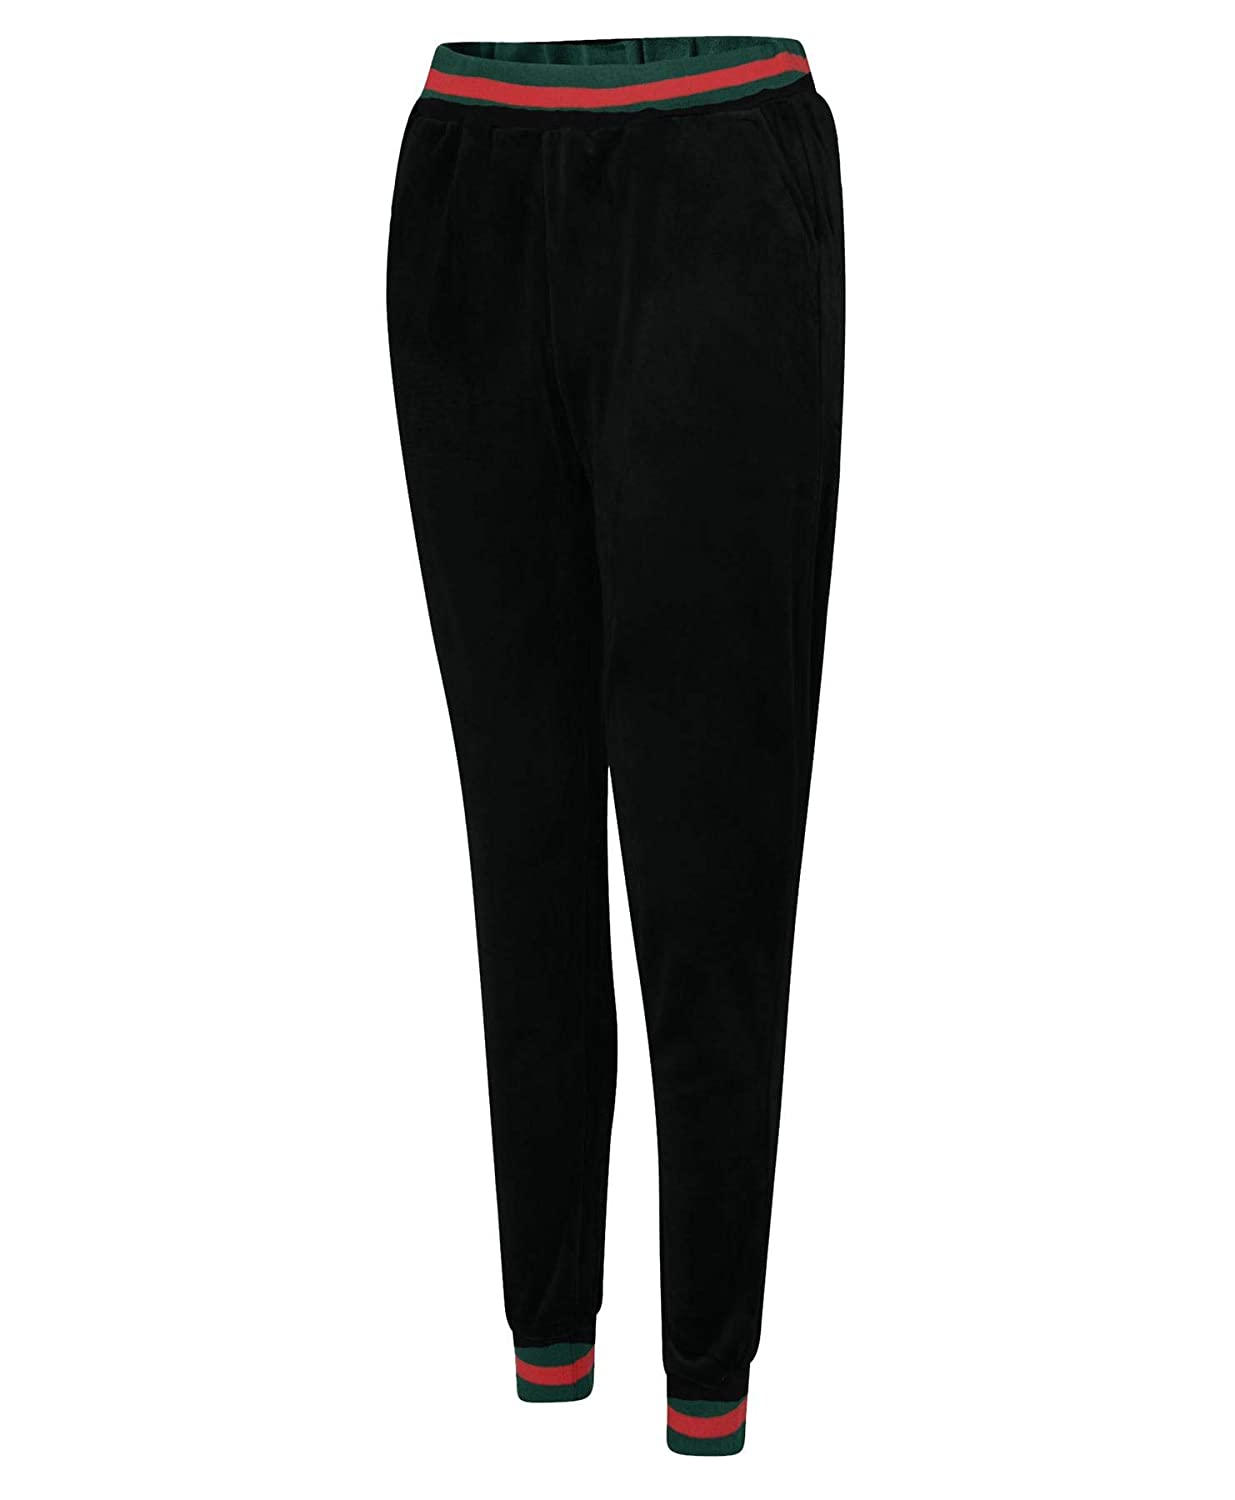 LotMart Women Full Length Tracksuit Trousers Contrast Inserts